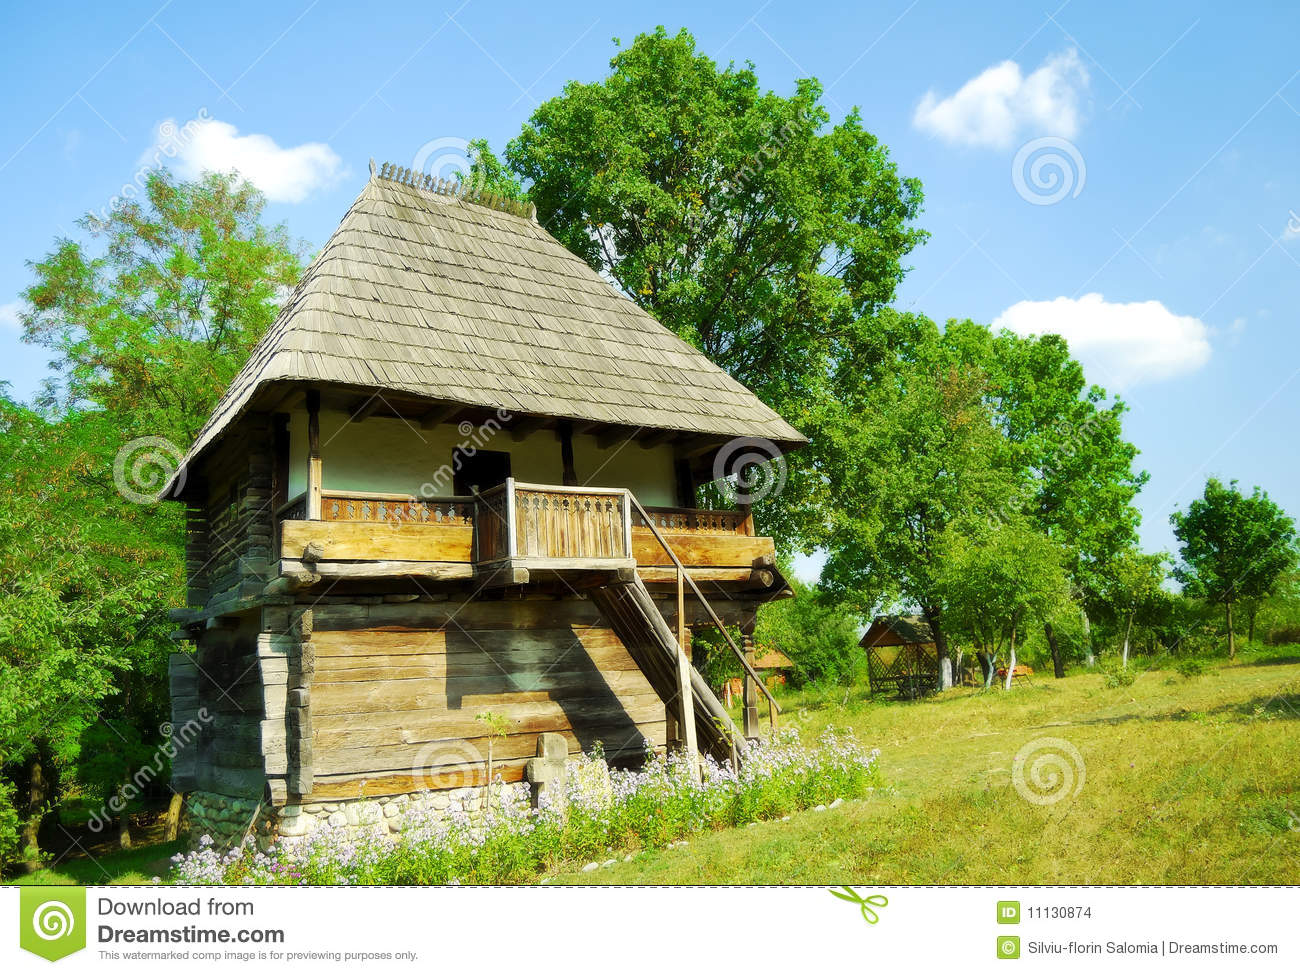 maison en bois authentique de roumanie images stock image 11130874